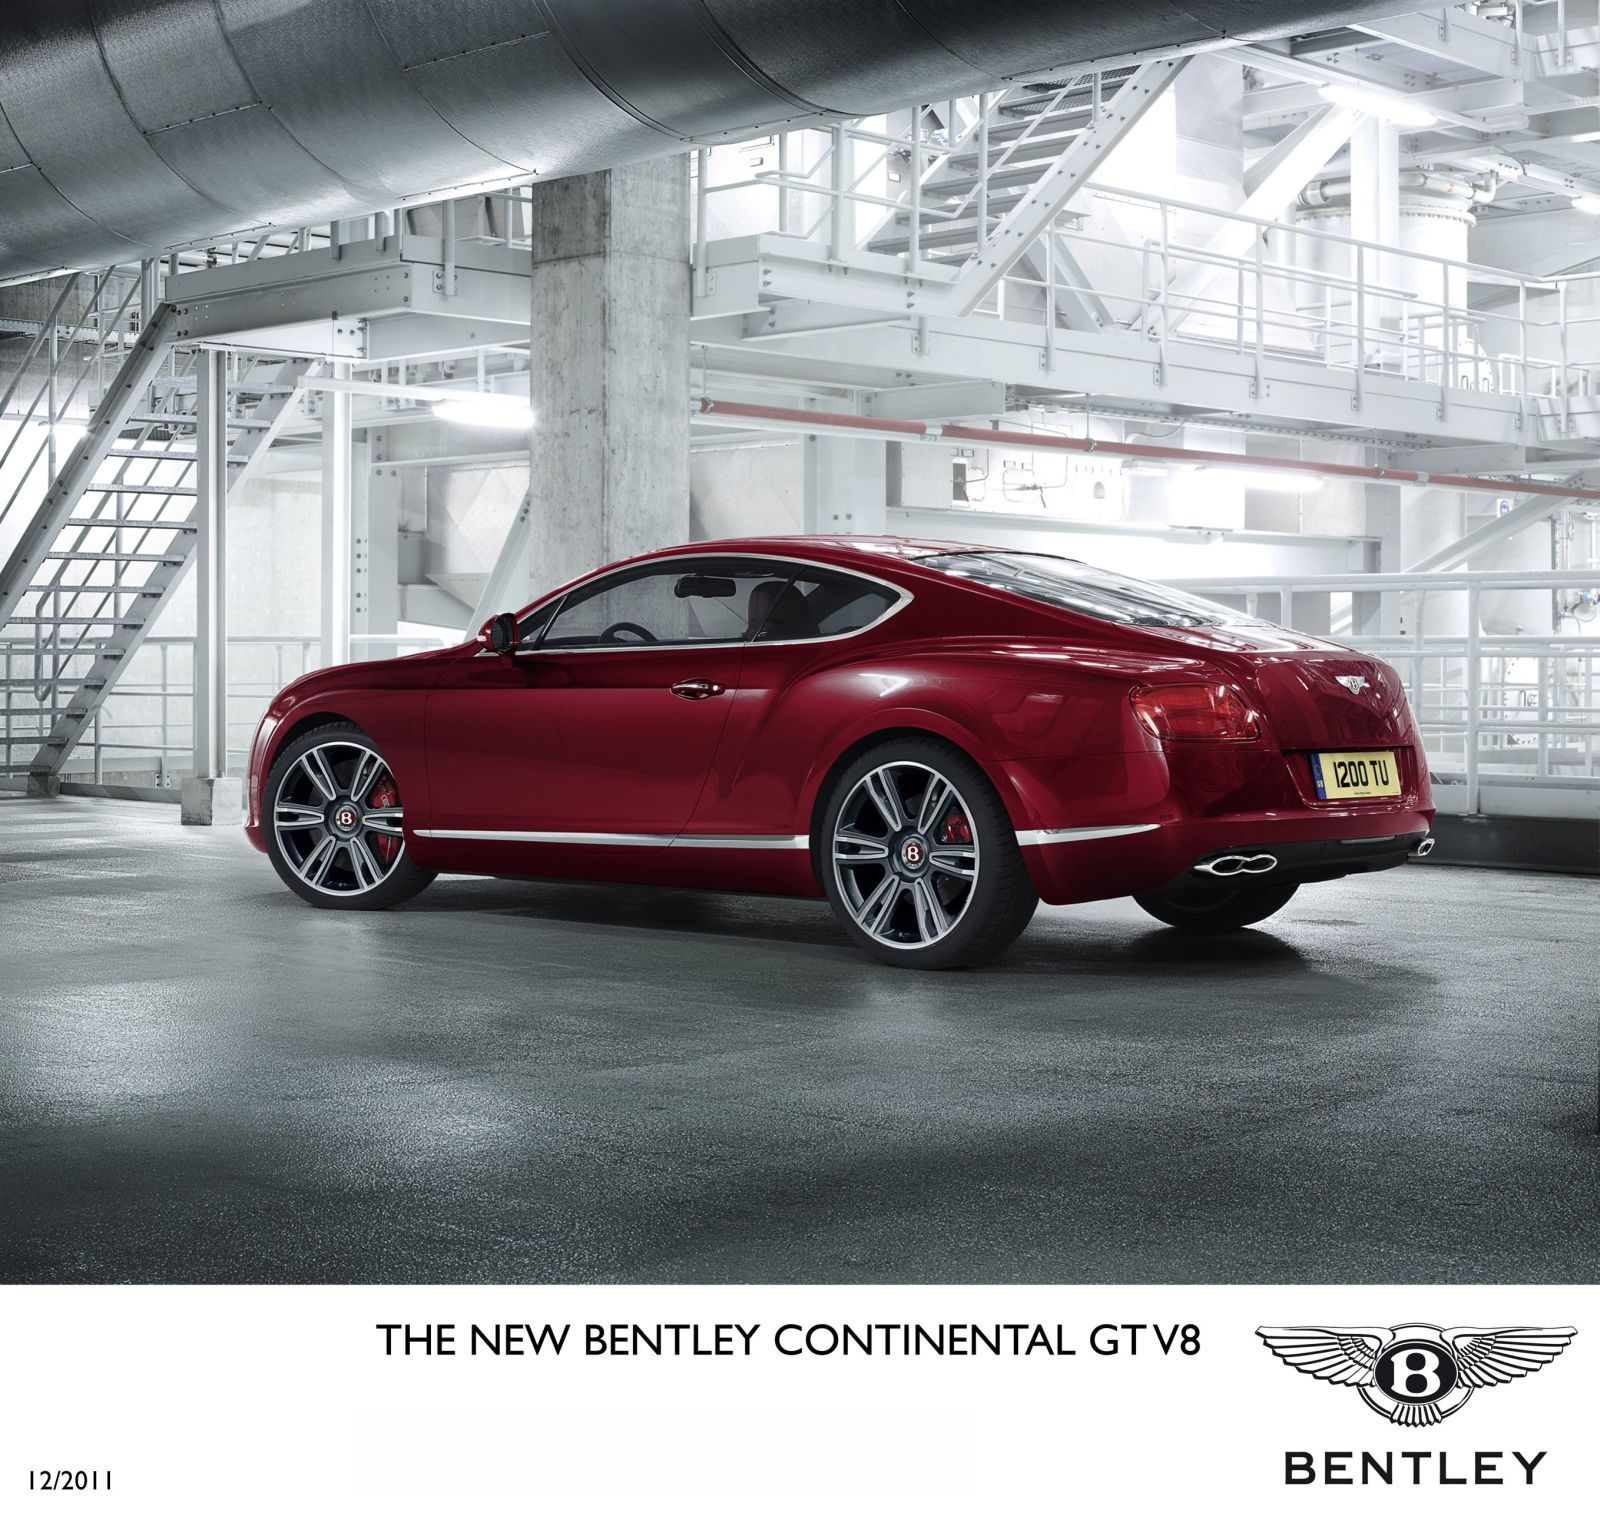 Bentley Cars 2012: Daily Cars: New 2012 Bentley Continental V8